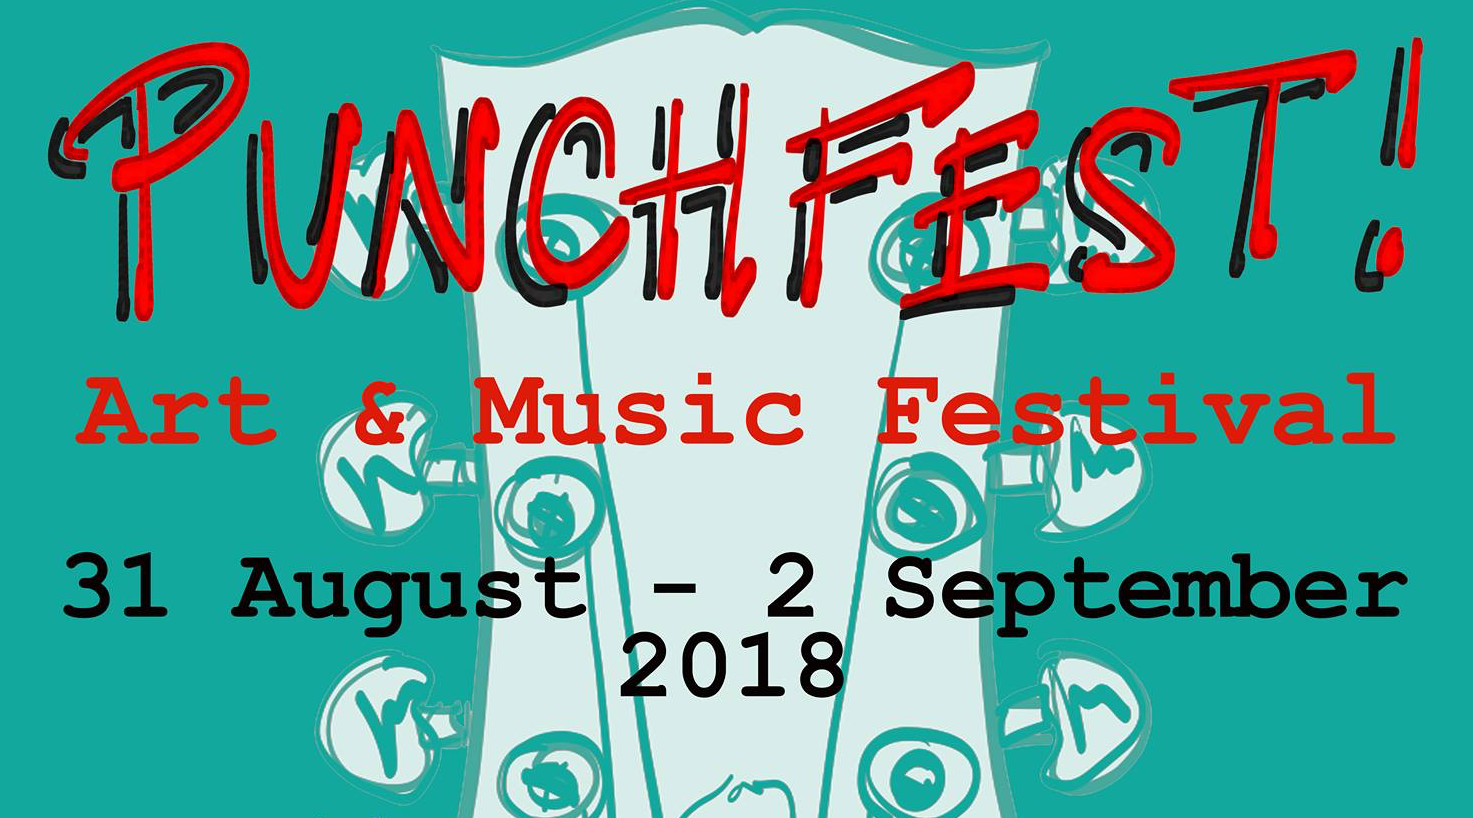 Welcome to Punchfest 2018 – a new and exciting Music and Arts festival taking place over three days this summer in Suffolk.